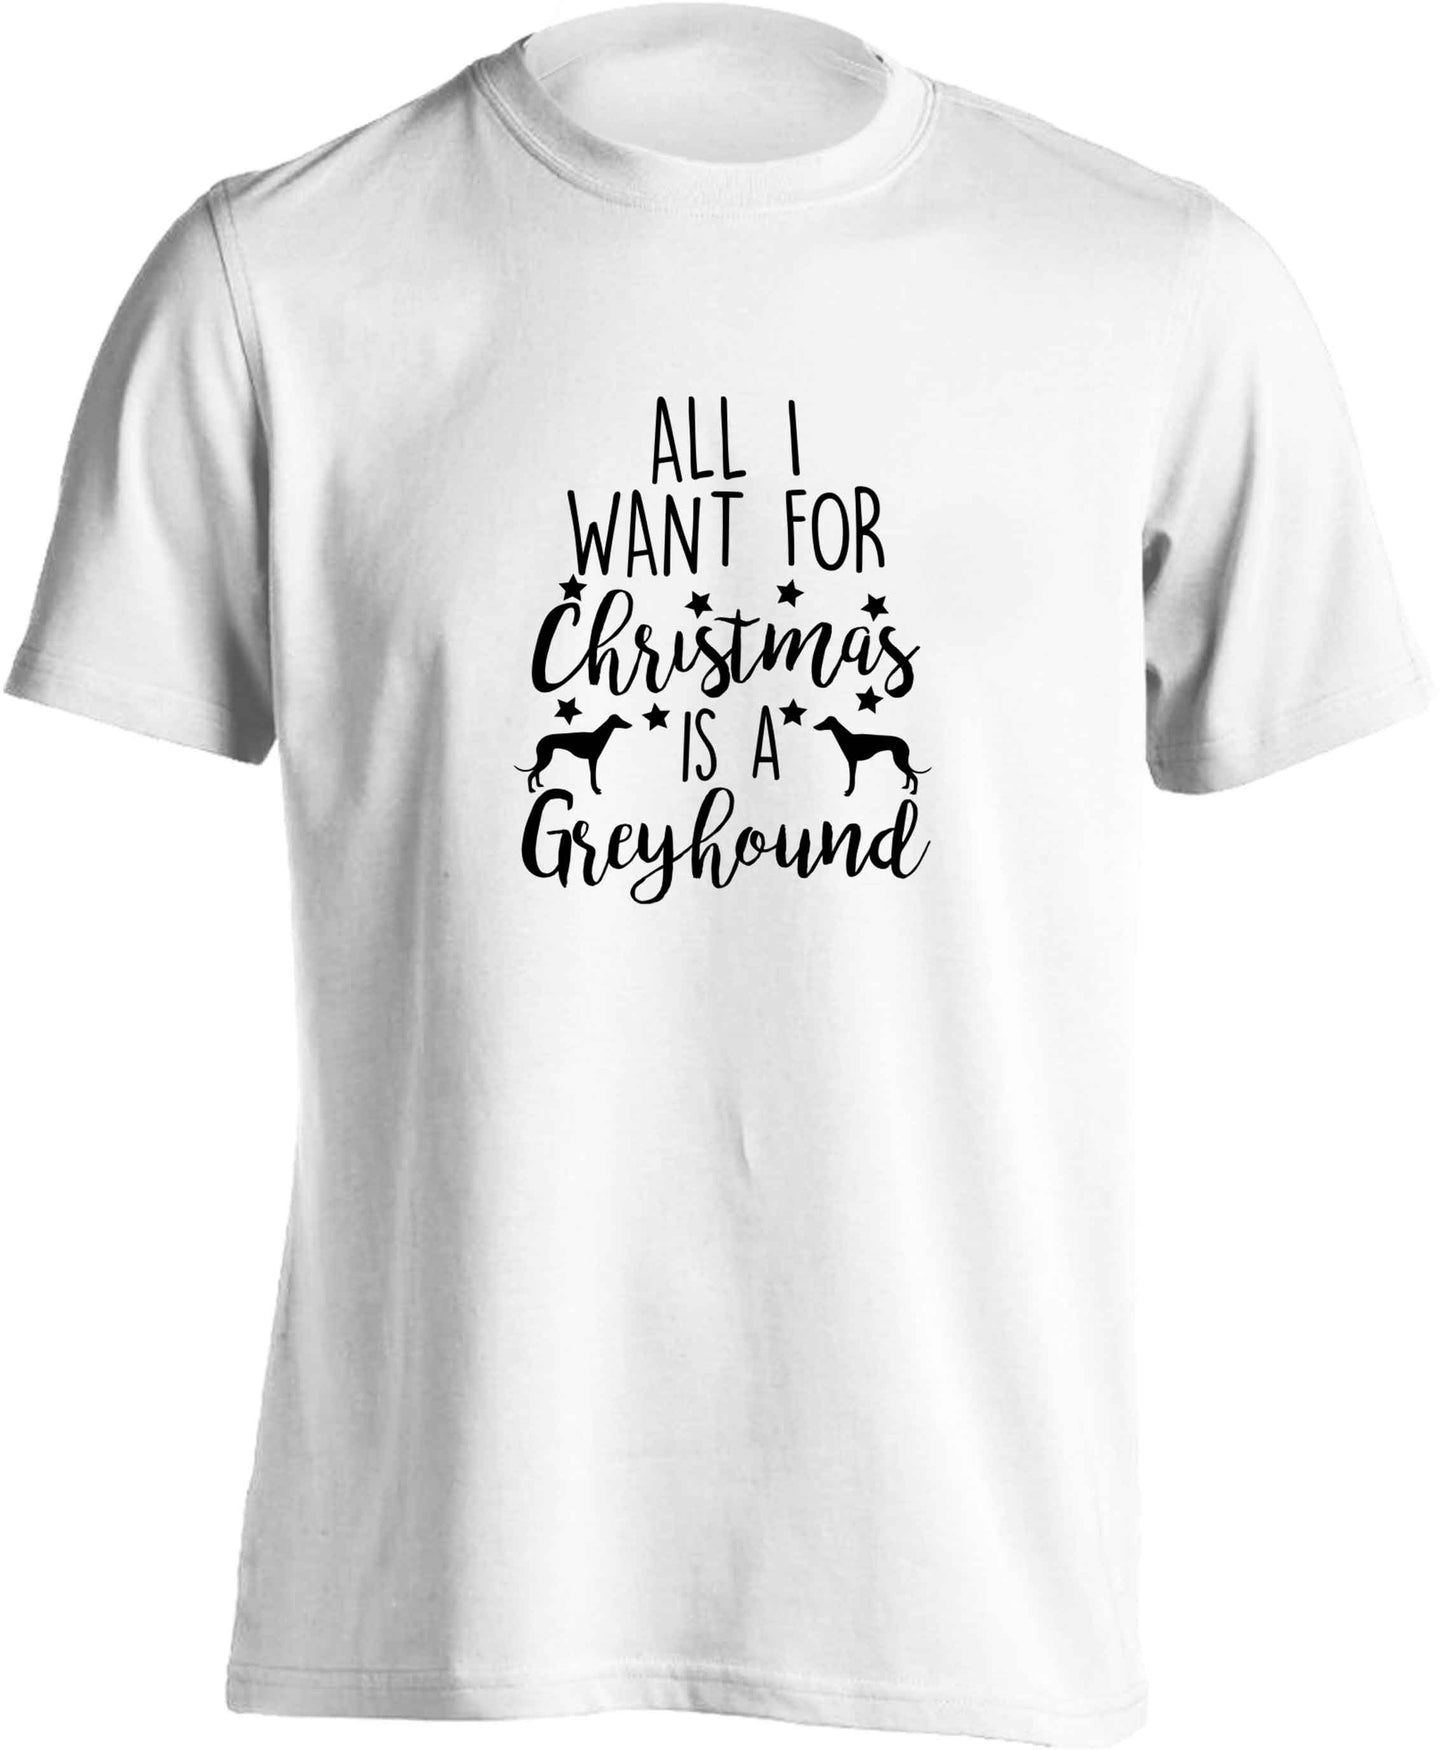 All I want for Christmas is a greyhound adults unisex white Tshirt 2XL